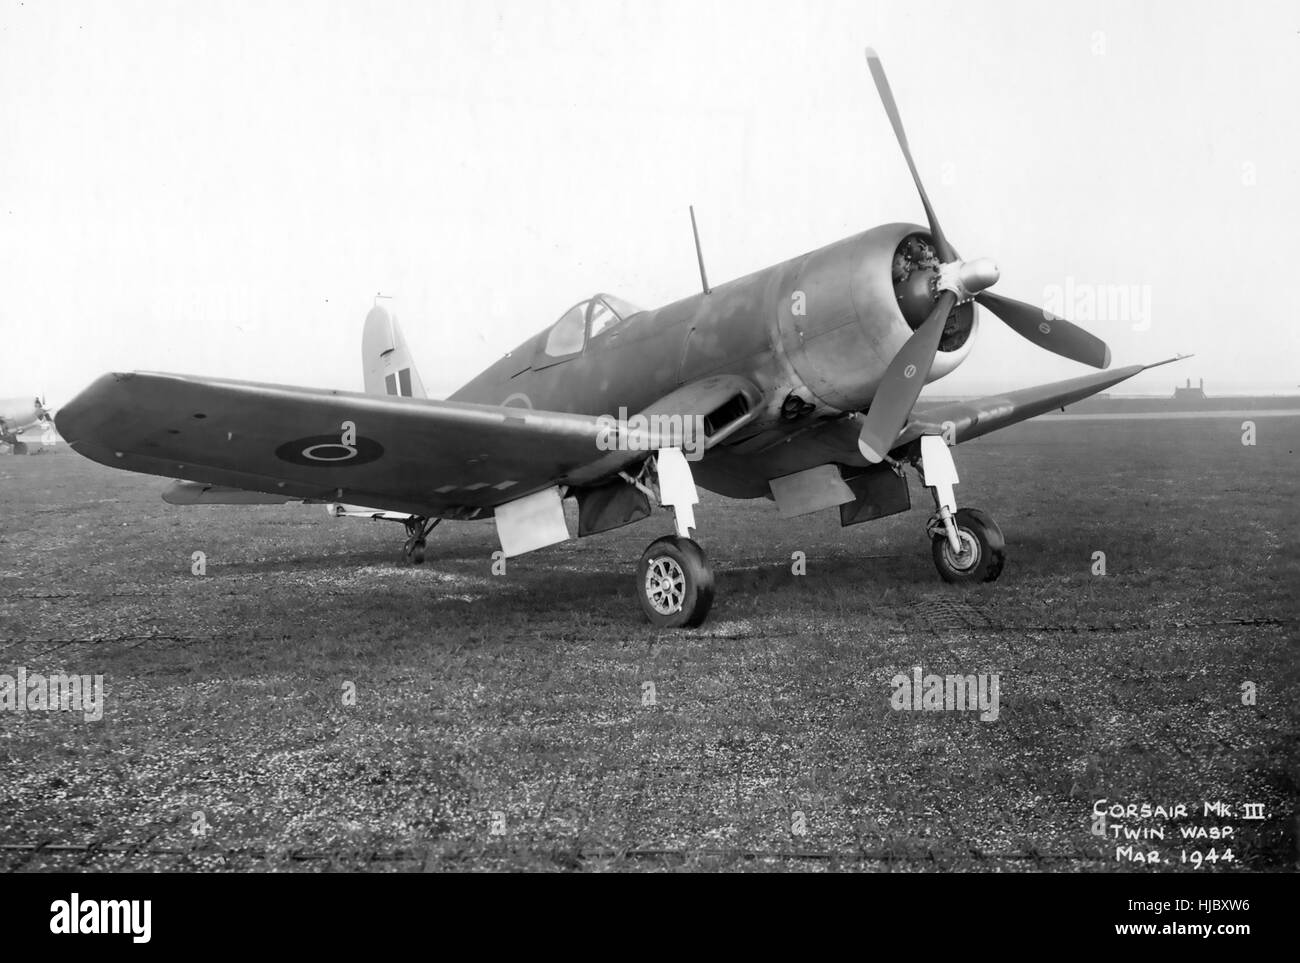 VOUGHT F4U CORSAIR Mk III in March 1944. Air Ministry photo. - Stock Image